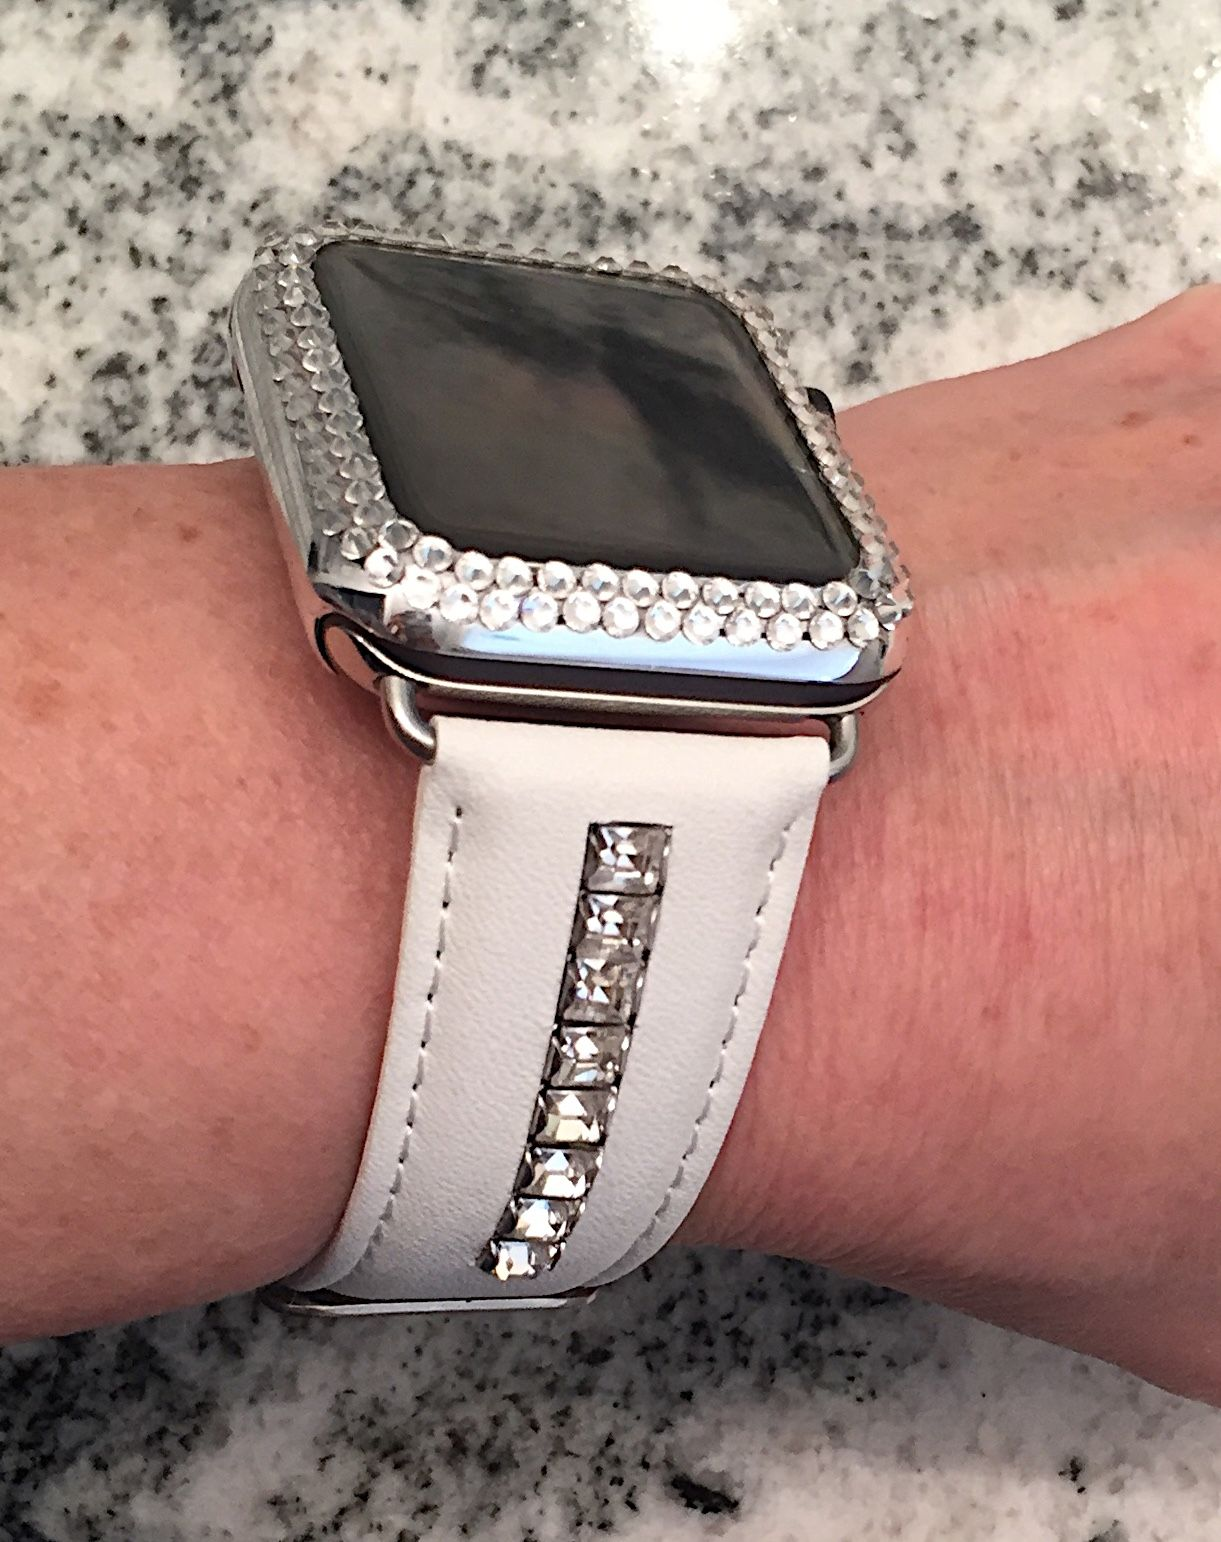 Pin by CrystaliZing Designs on Bling Apple Watch Bands